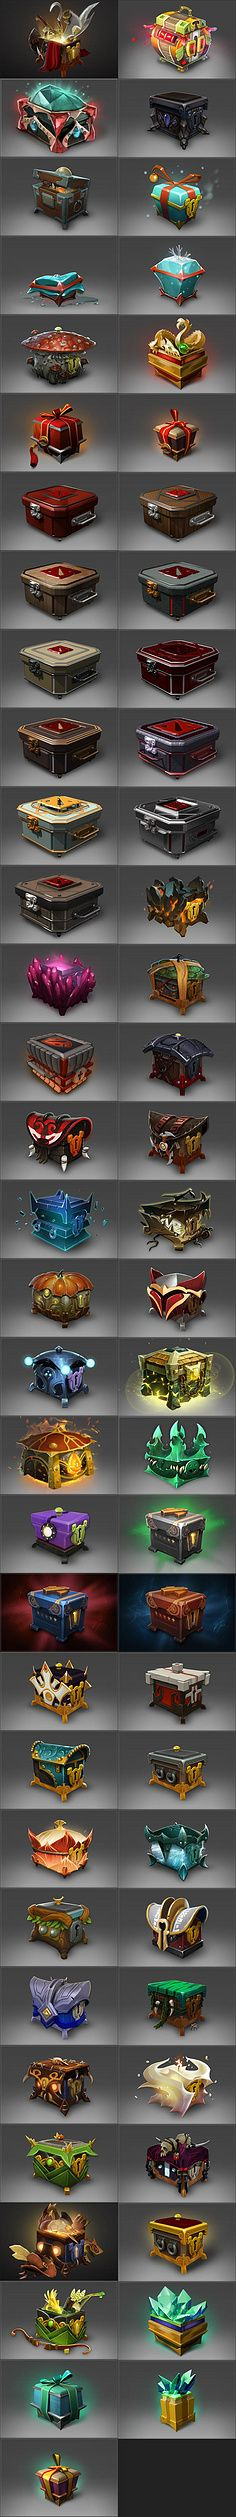 Mr_hunter collected items icon material